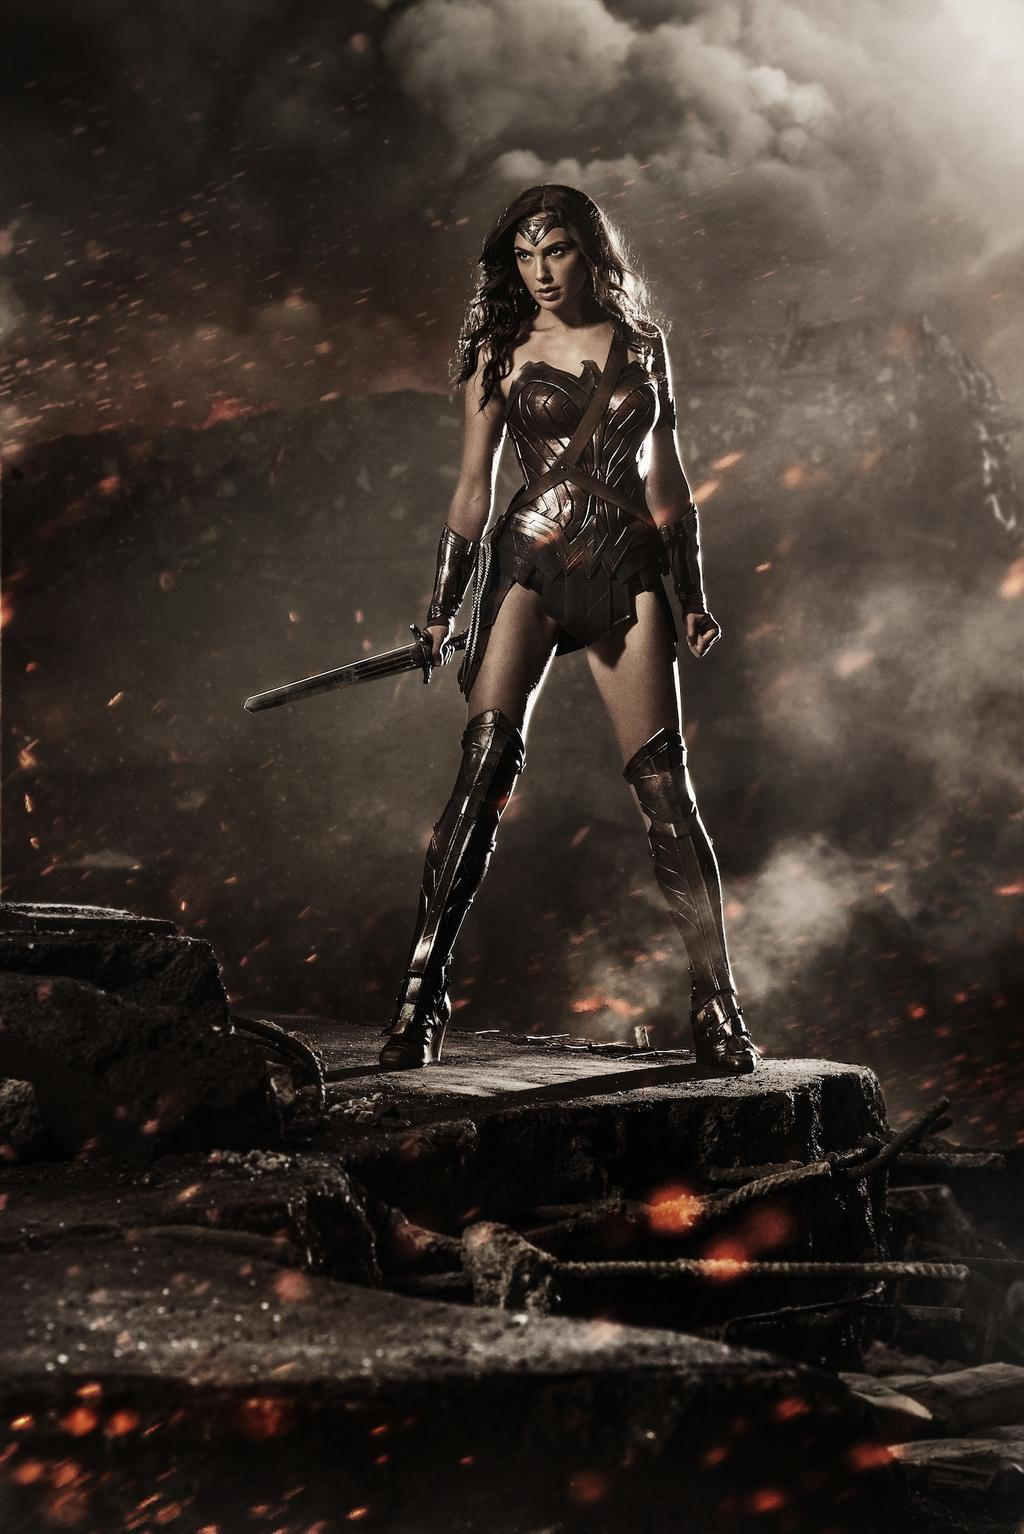 Gal Gadot as Wonder Woman in Batman V Superman Dawn of Justice